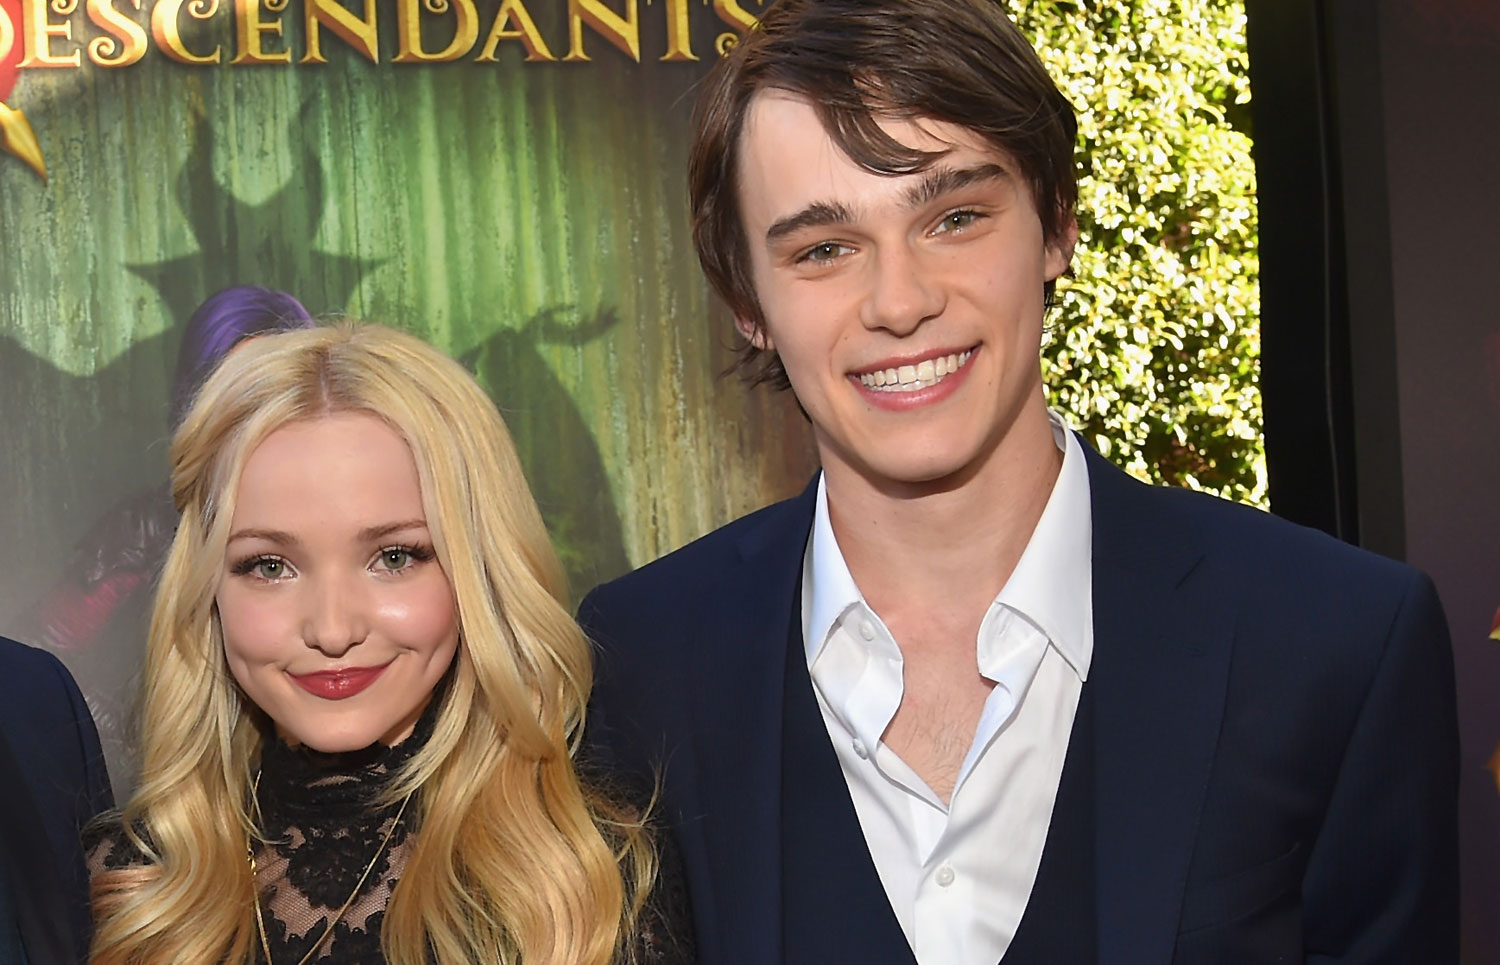 China mcclain breaking news and photos just jared jr page 5 - Dove Cameron Calls Mitchell Hope One Of Her Favorite People On The Face Of The Earth